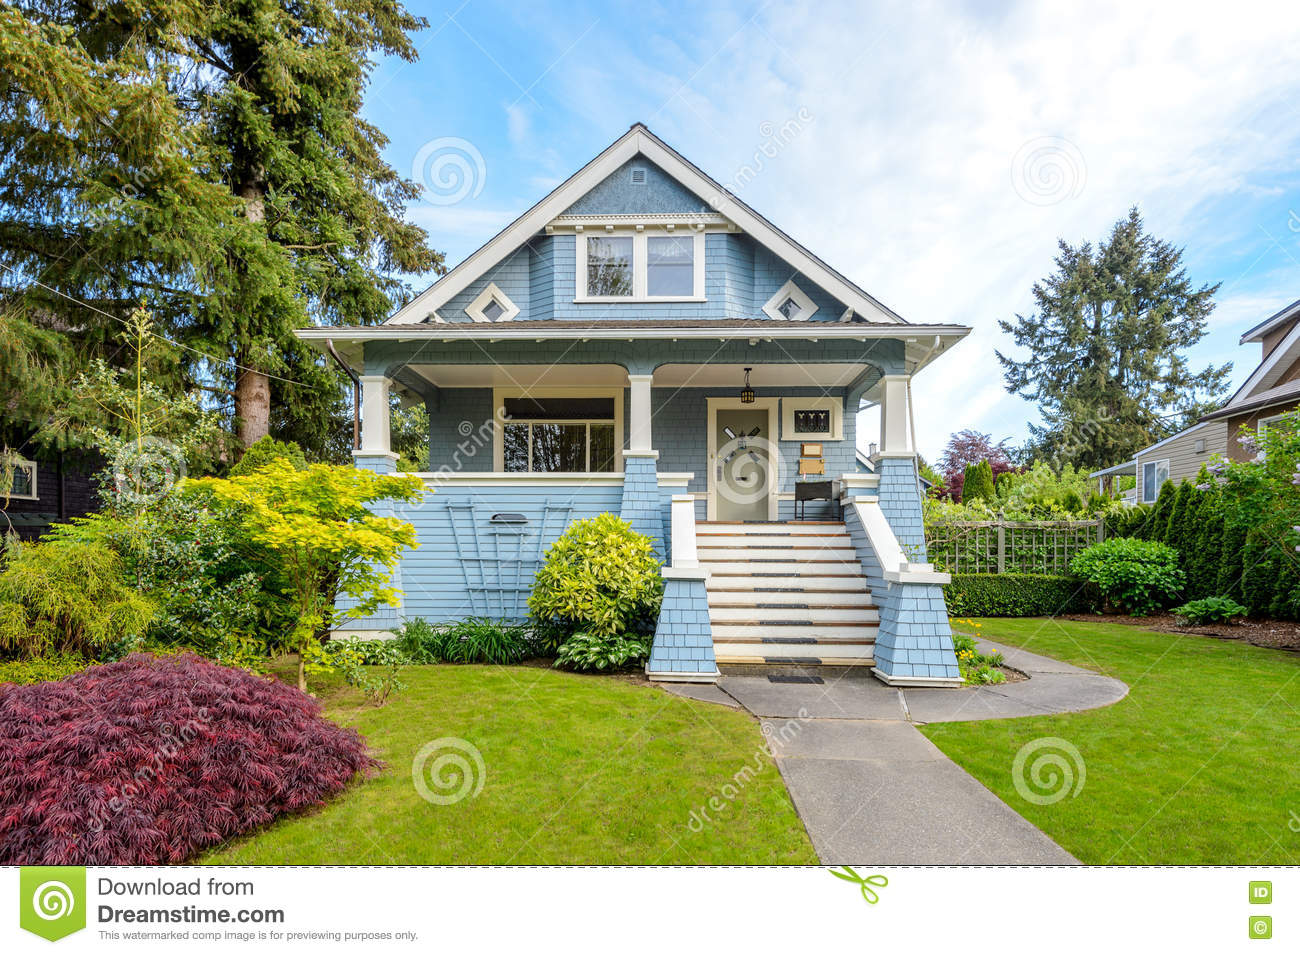 Cozy Blue House With A Beautiful Garden On A Sunny Day Stock Photo